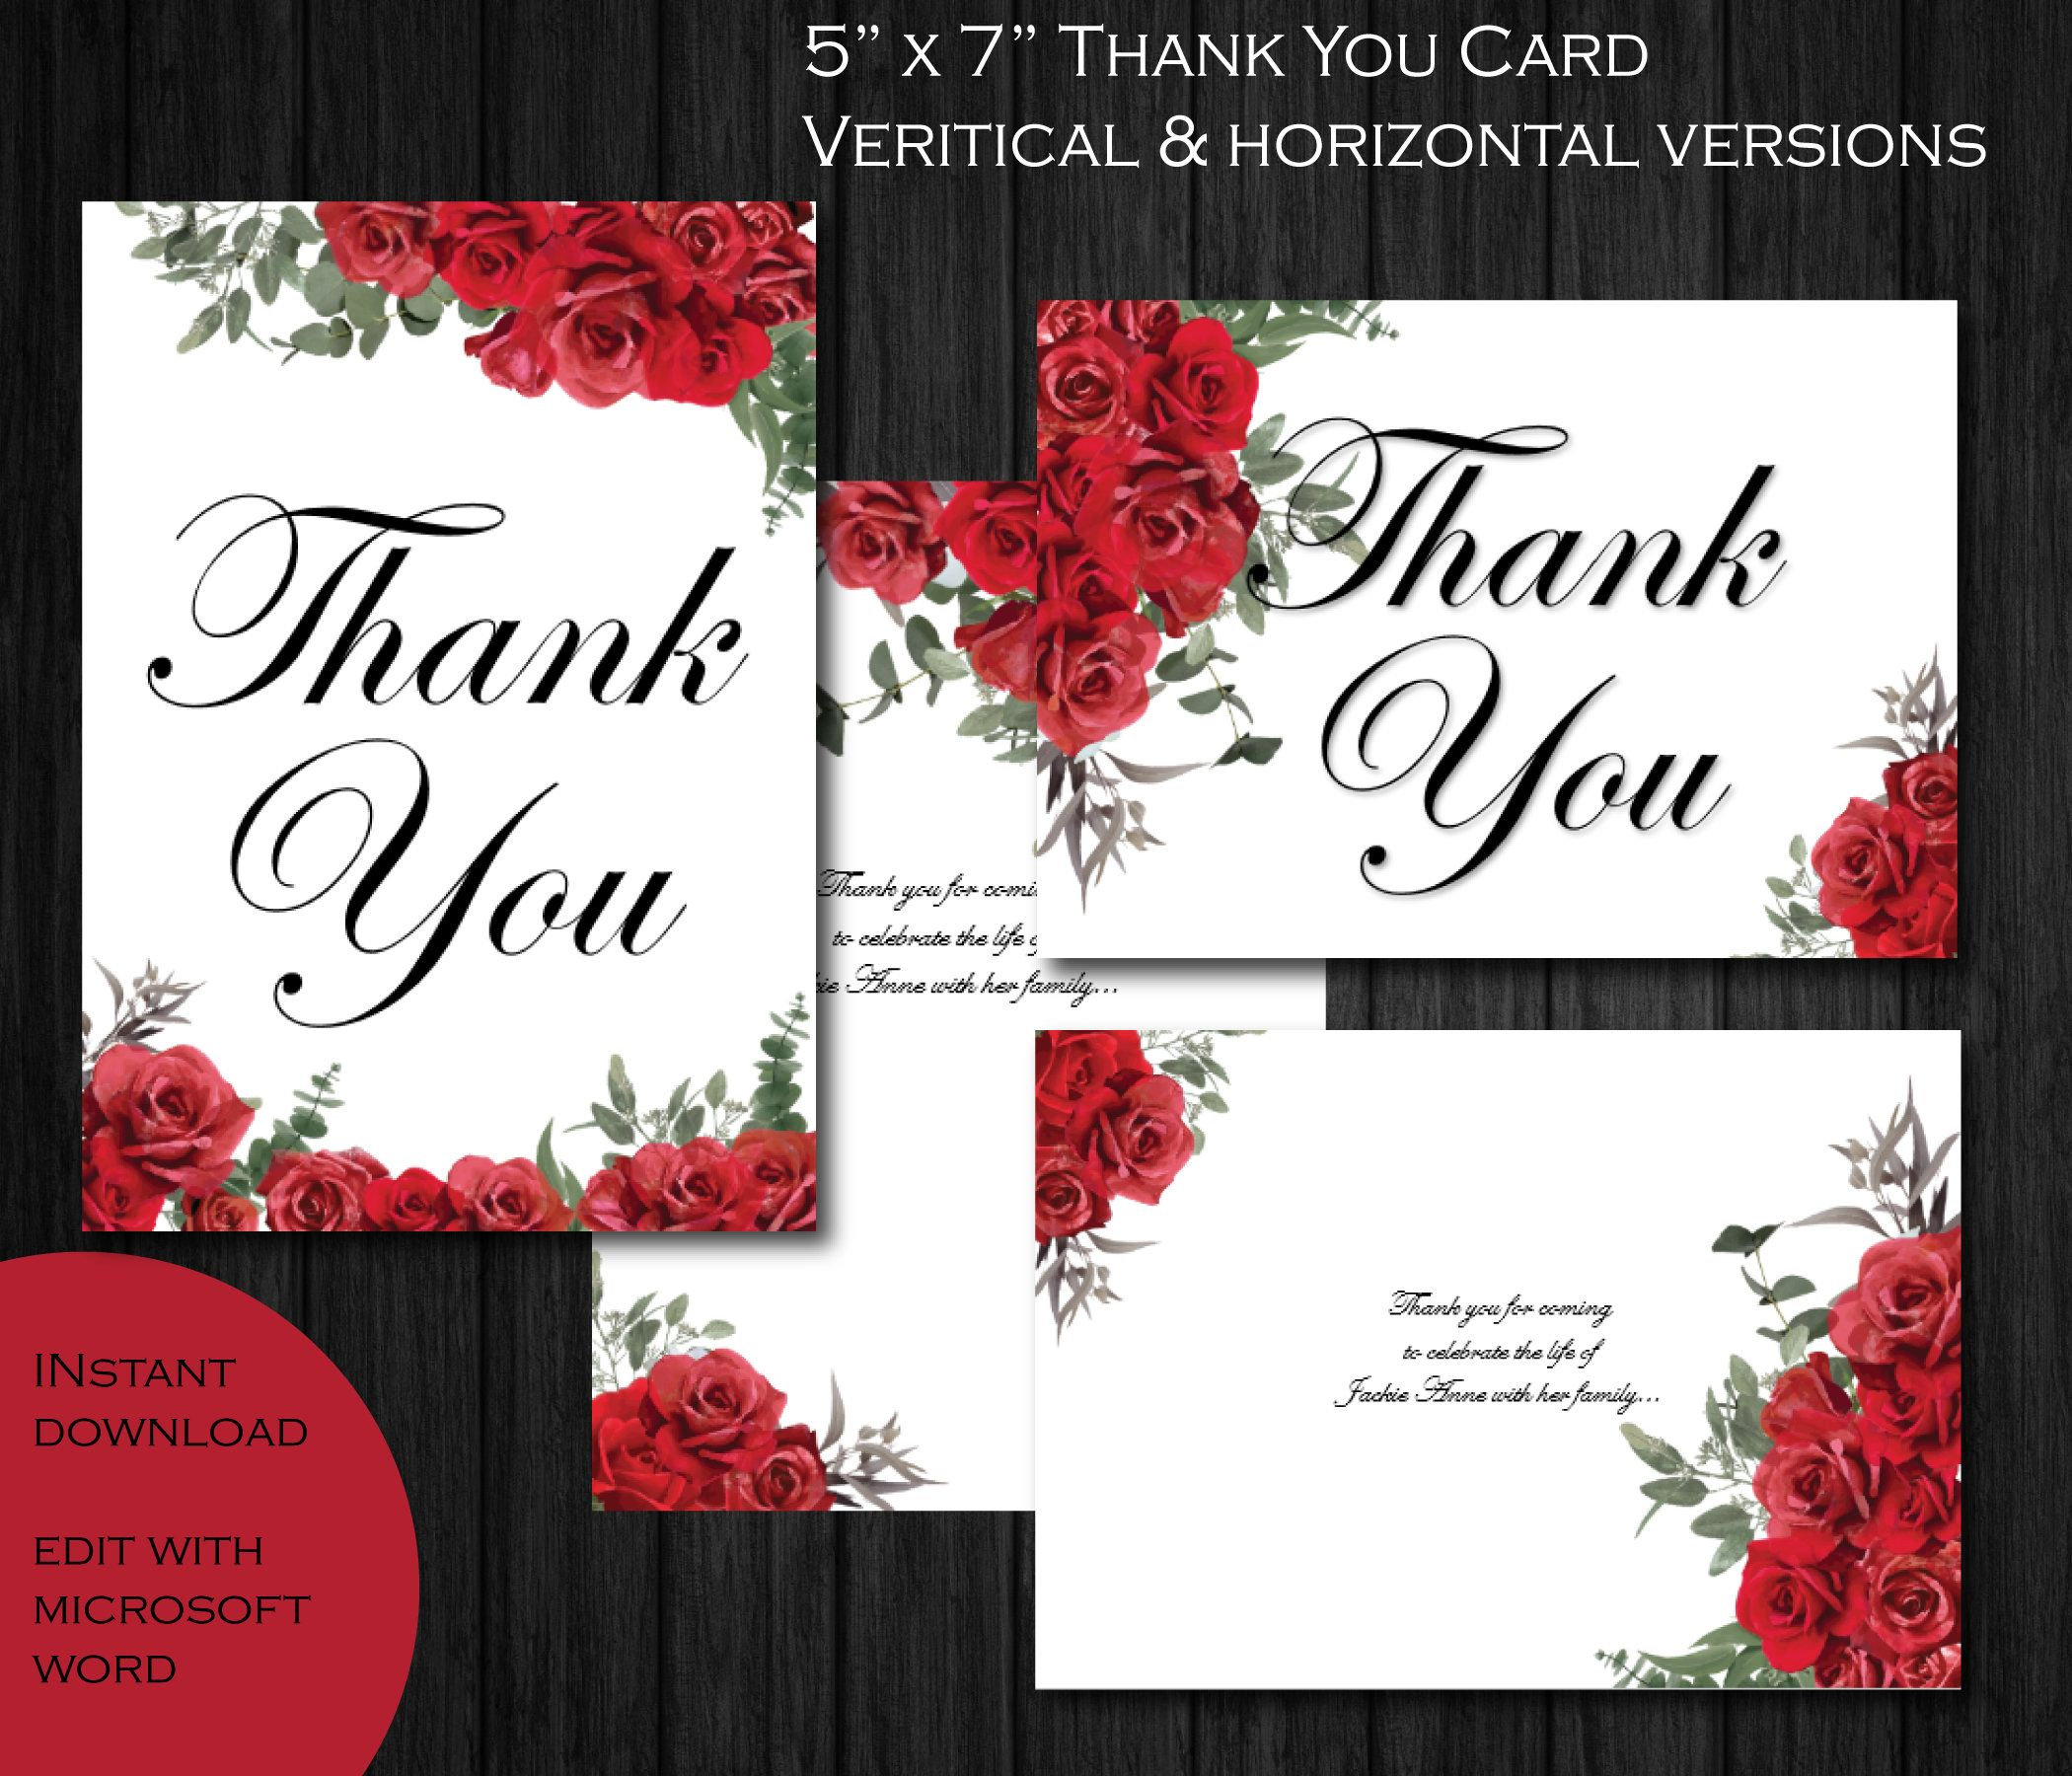 Printable Funeral Thank You Card 5x7 Memorial Thank You Etsy Funeral Thank You Cards Thank You Card Template Funeral Thank You